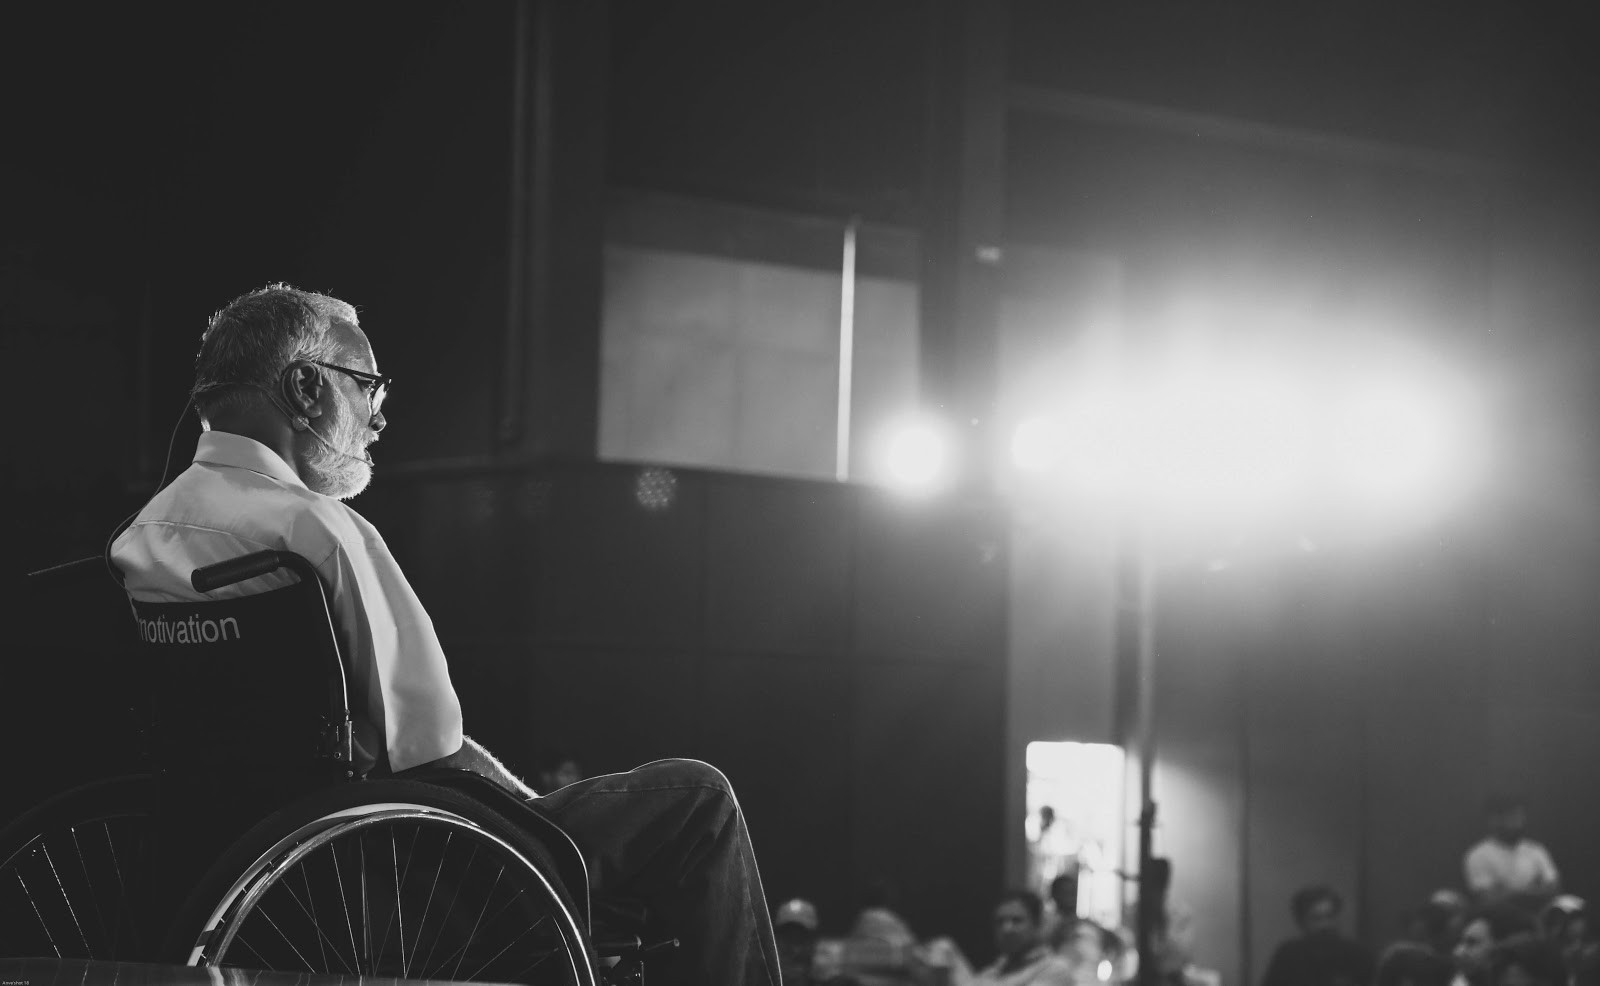 Black and white photo of Mohan Sundaram—Founding CEO & Director of Artilabs. He is in a wheelchair facing an audience.